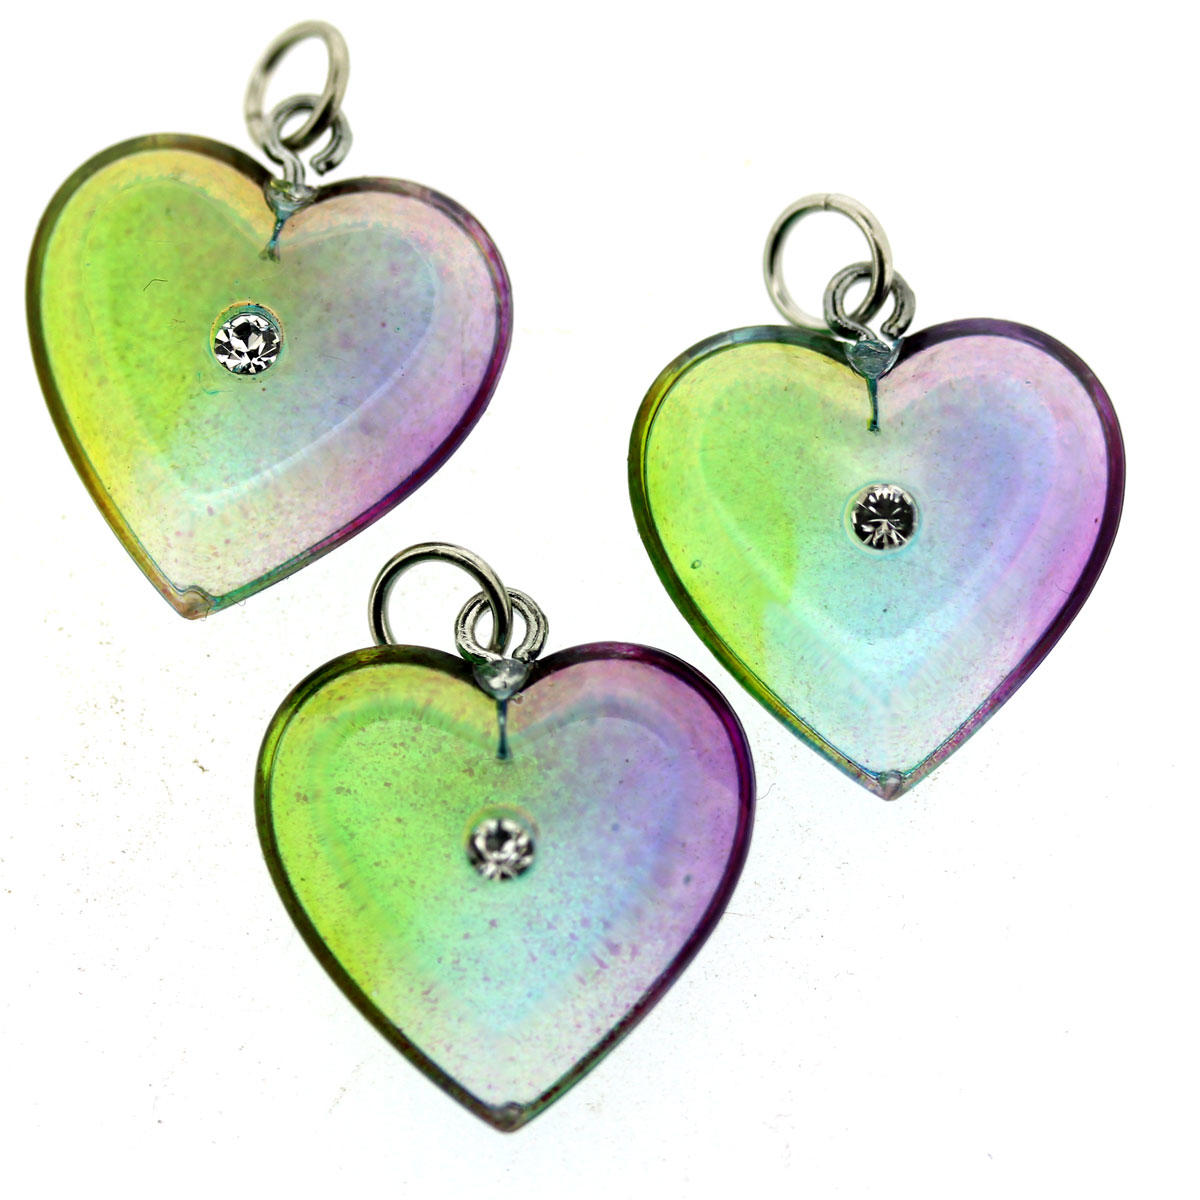 Rainbow Heart Pendant With Crystal